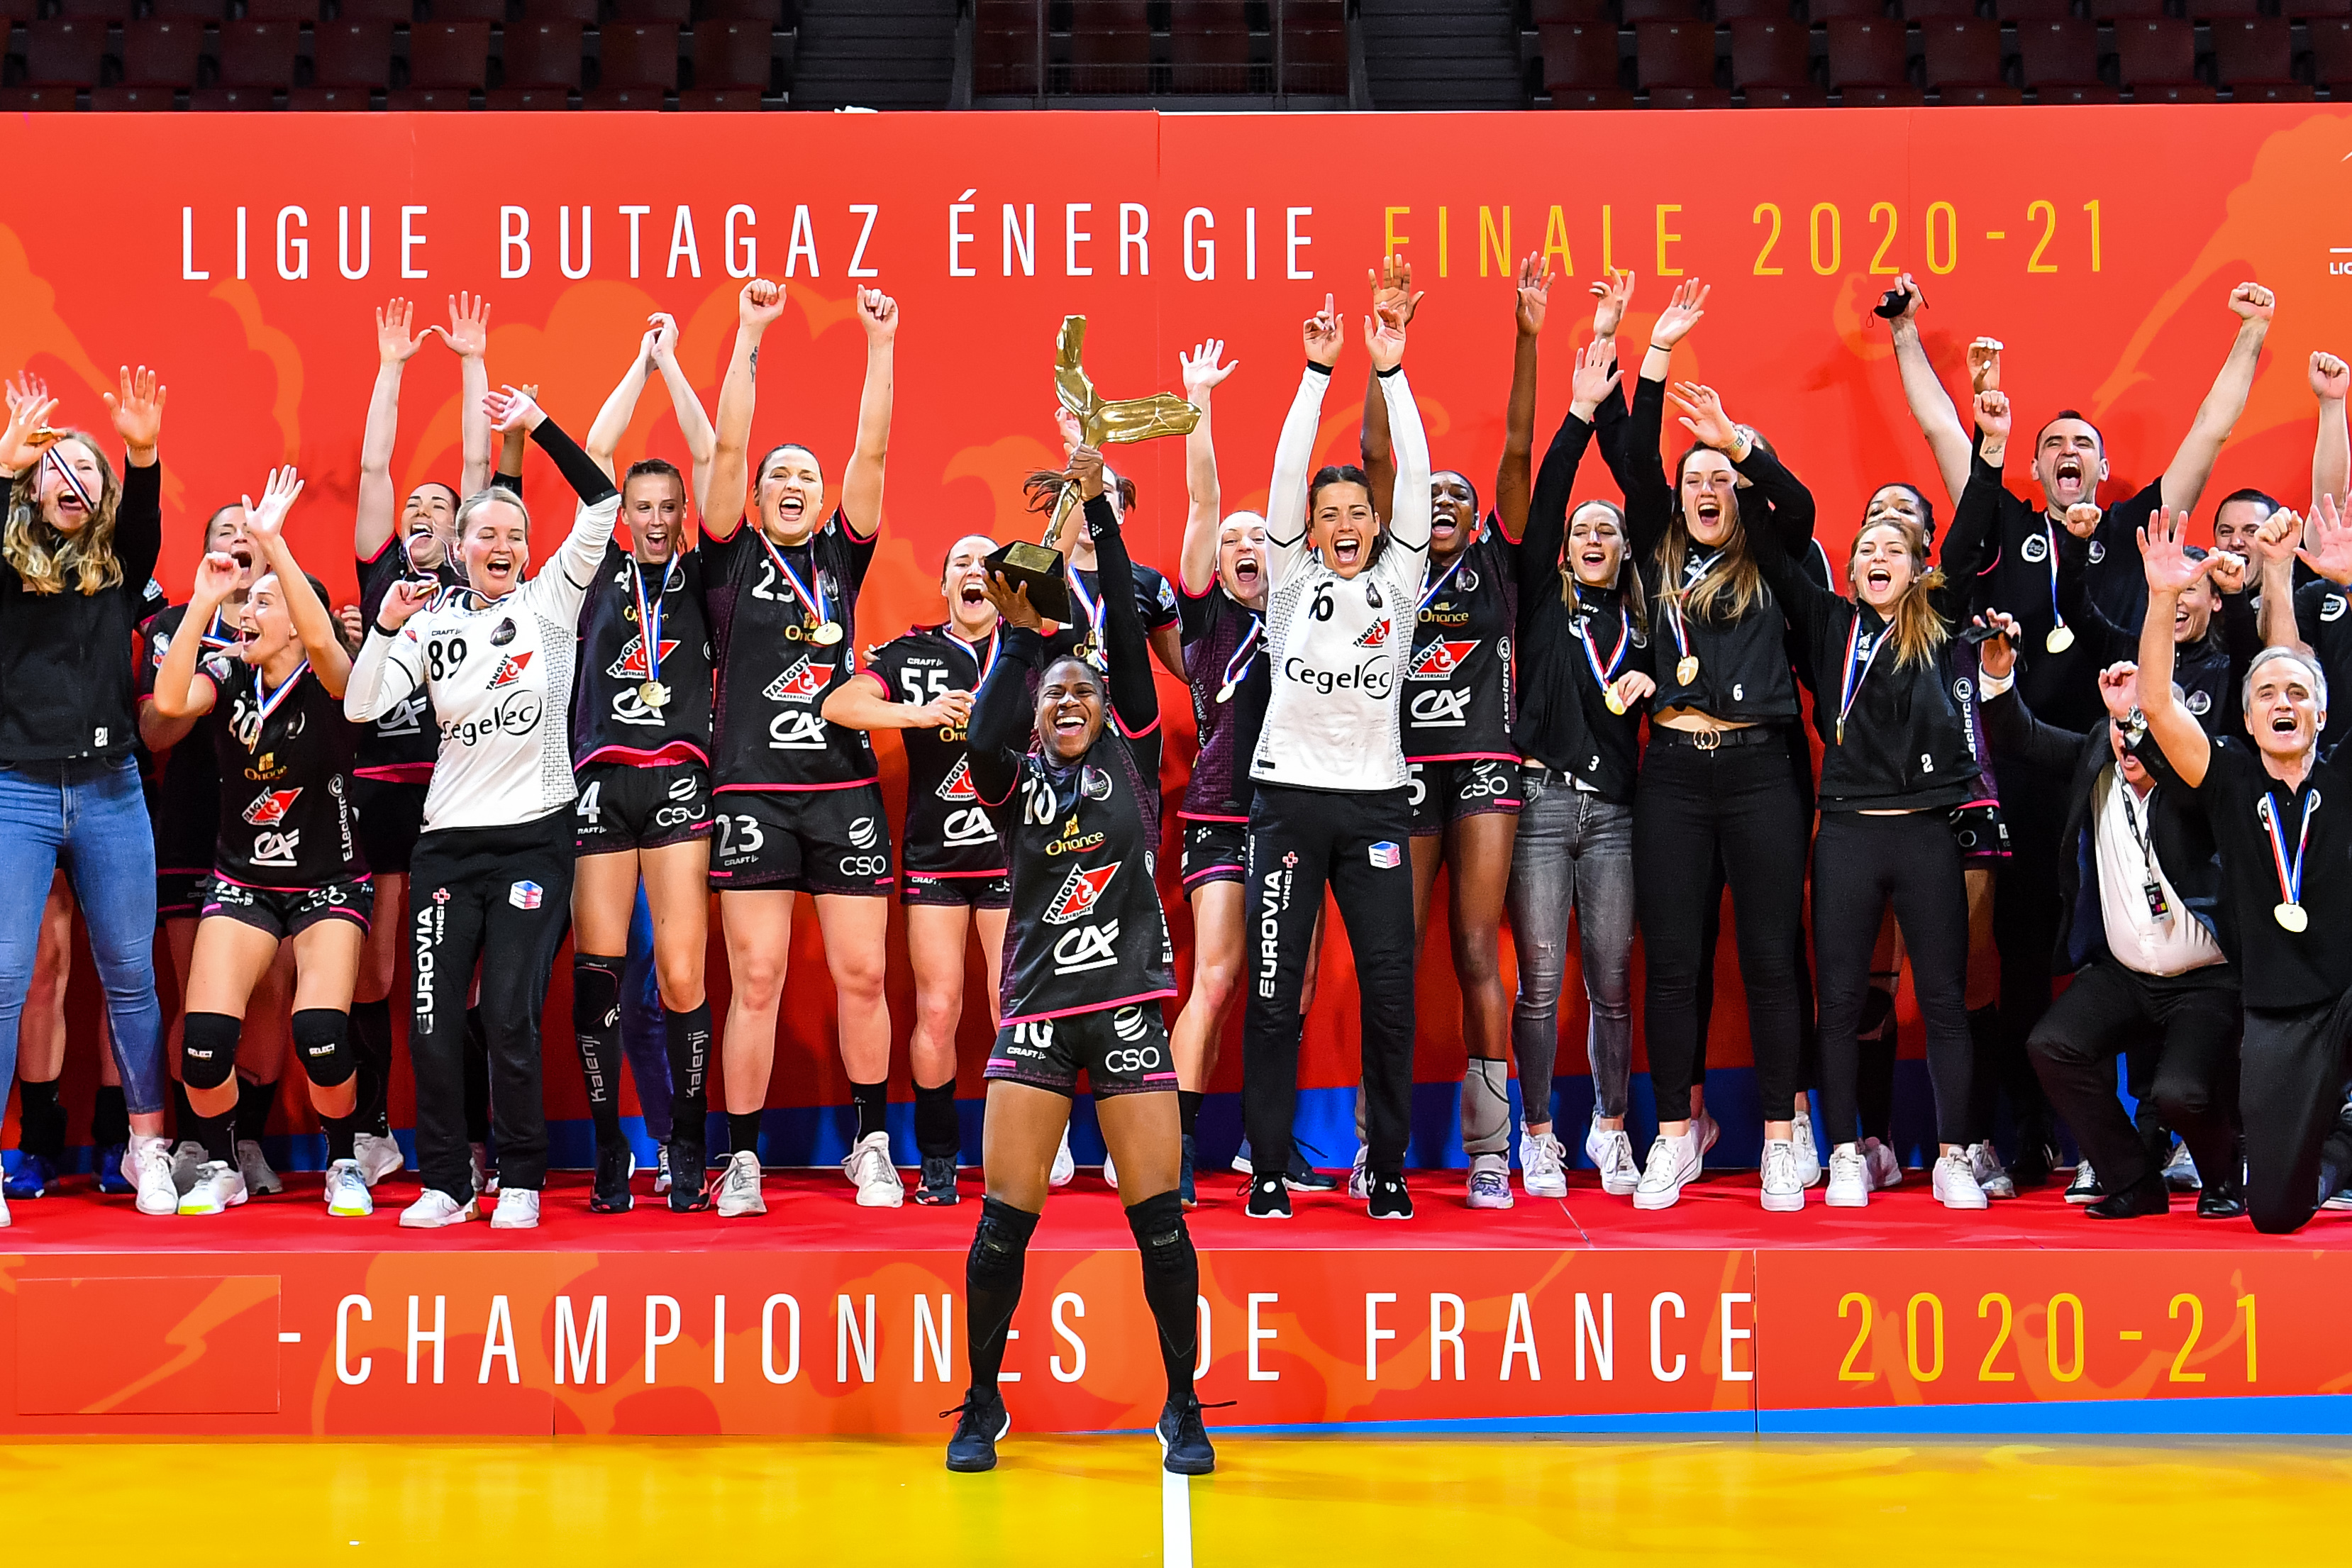 Team of Brest celebrate on the poidum after the women's Ligue Butagaz Energie final match between Brest and Metz at Brest Arena on May 23, 2021 in Brest, France. (Photo by Baptiste Fernandez/Icon Sport) - Brest (France)